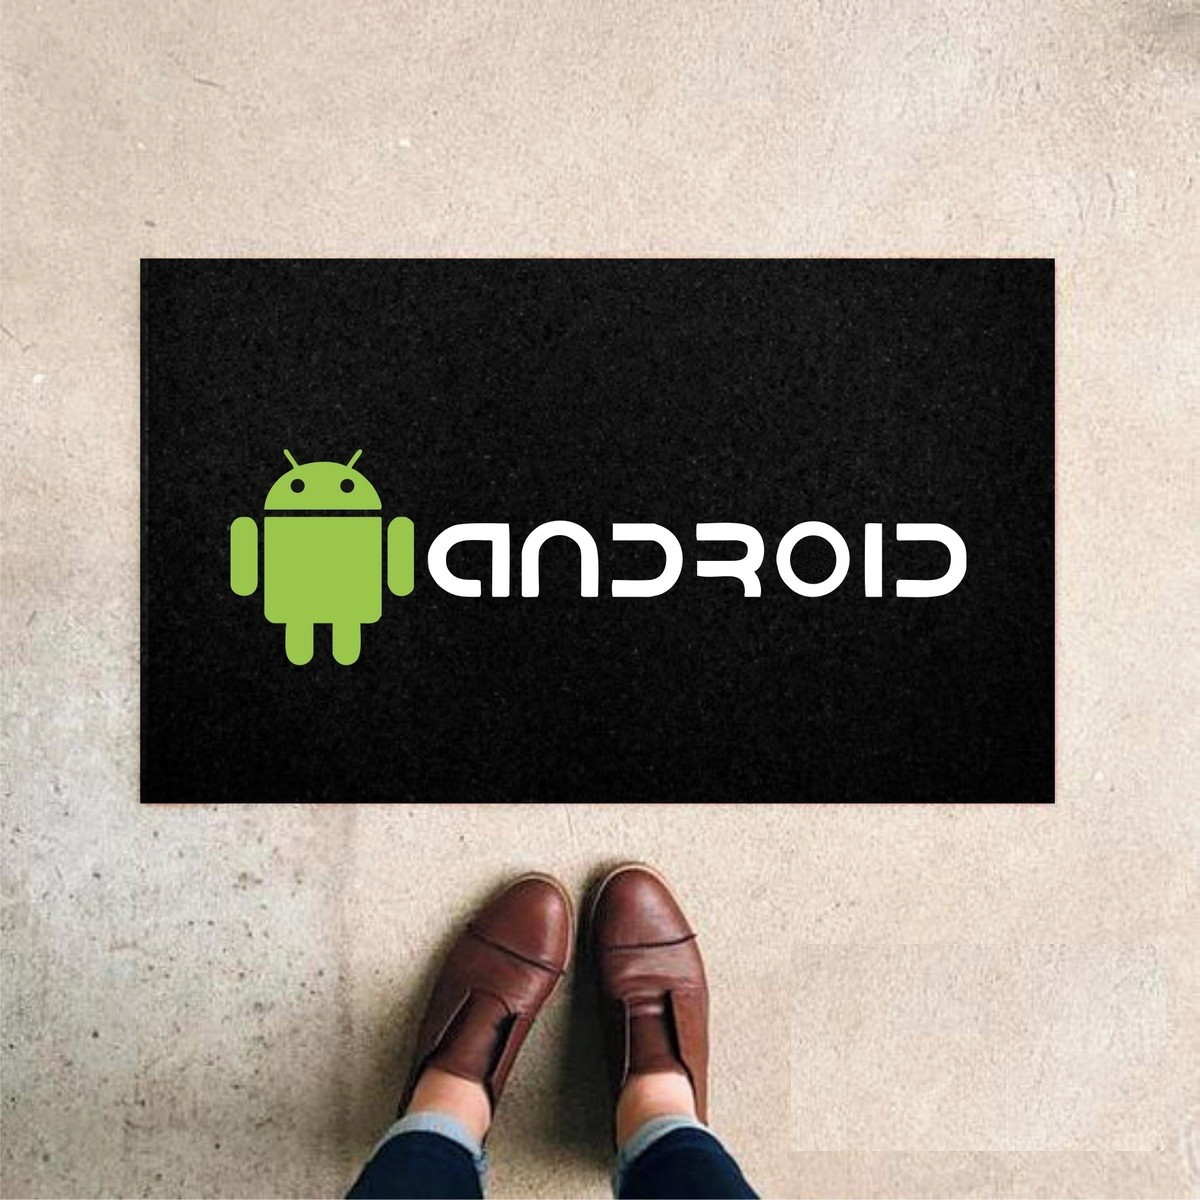 Tapete Capacho 'Android'